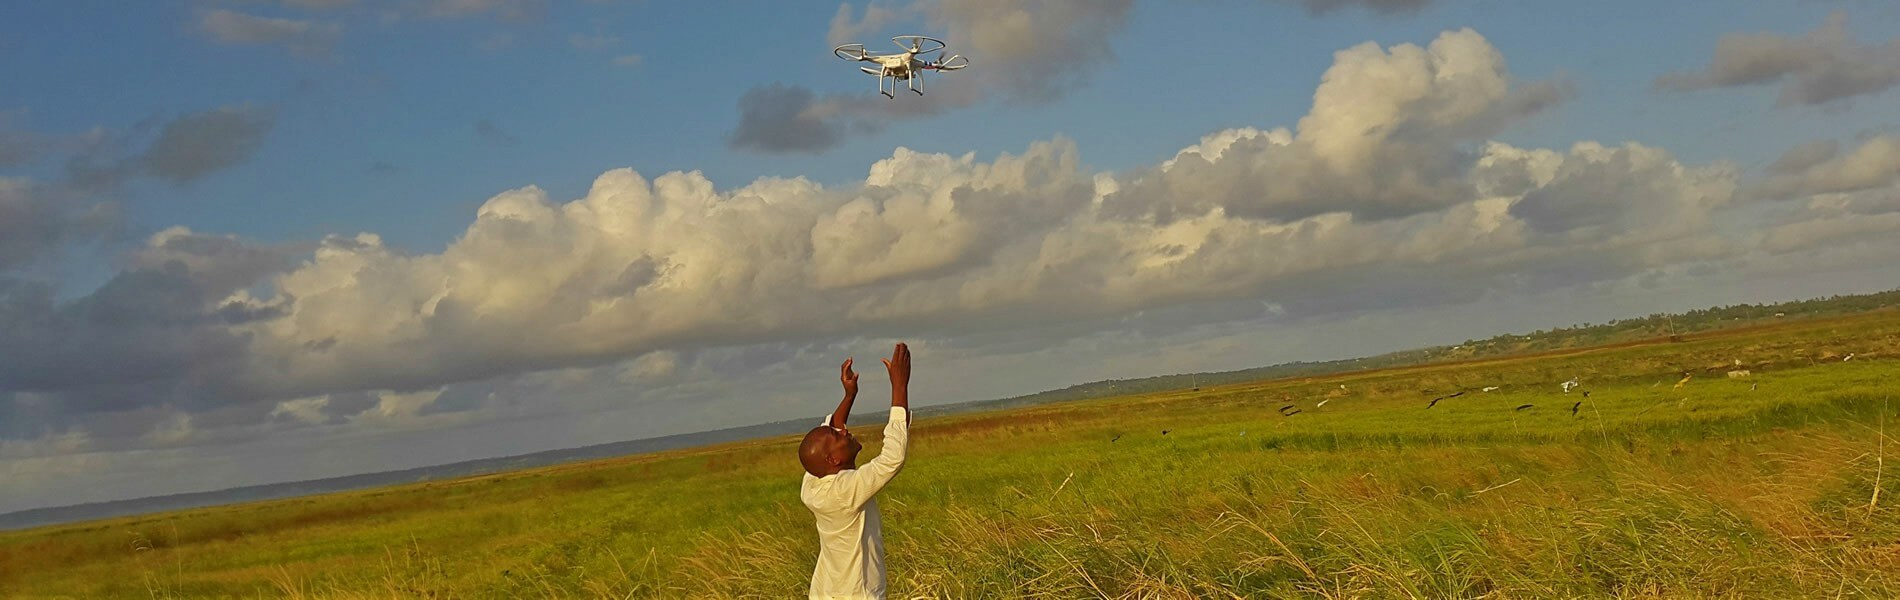 The Third Eye: Flying Sensors to Support Farmers' Decision Making